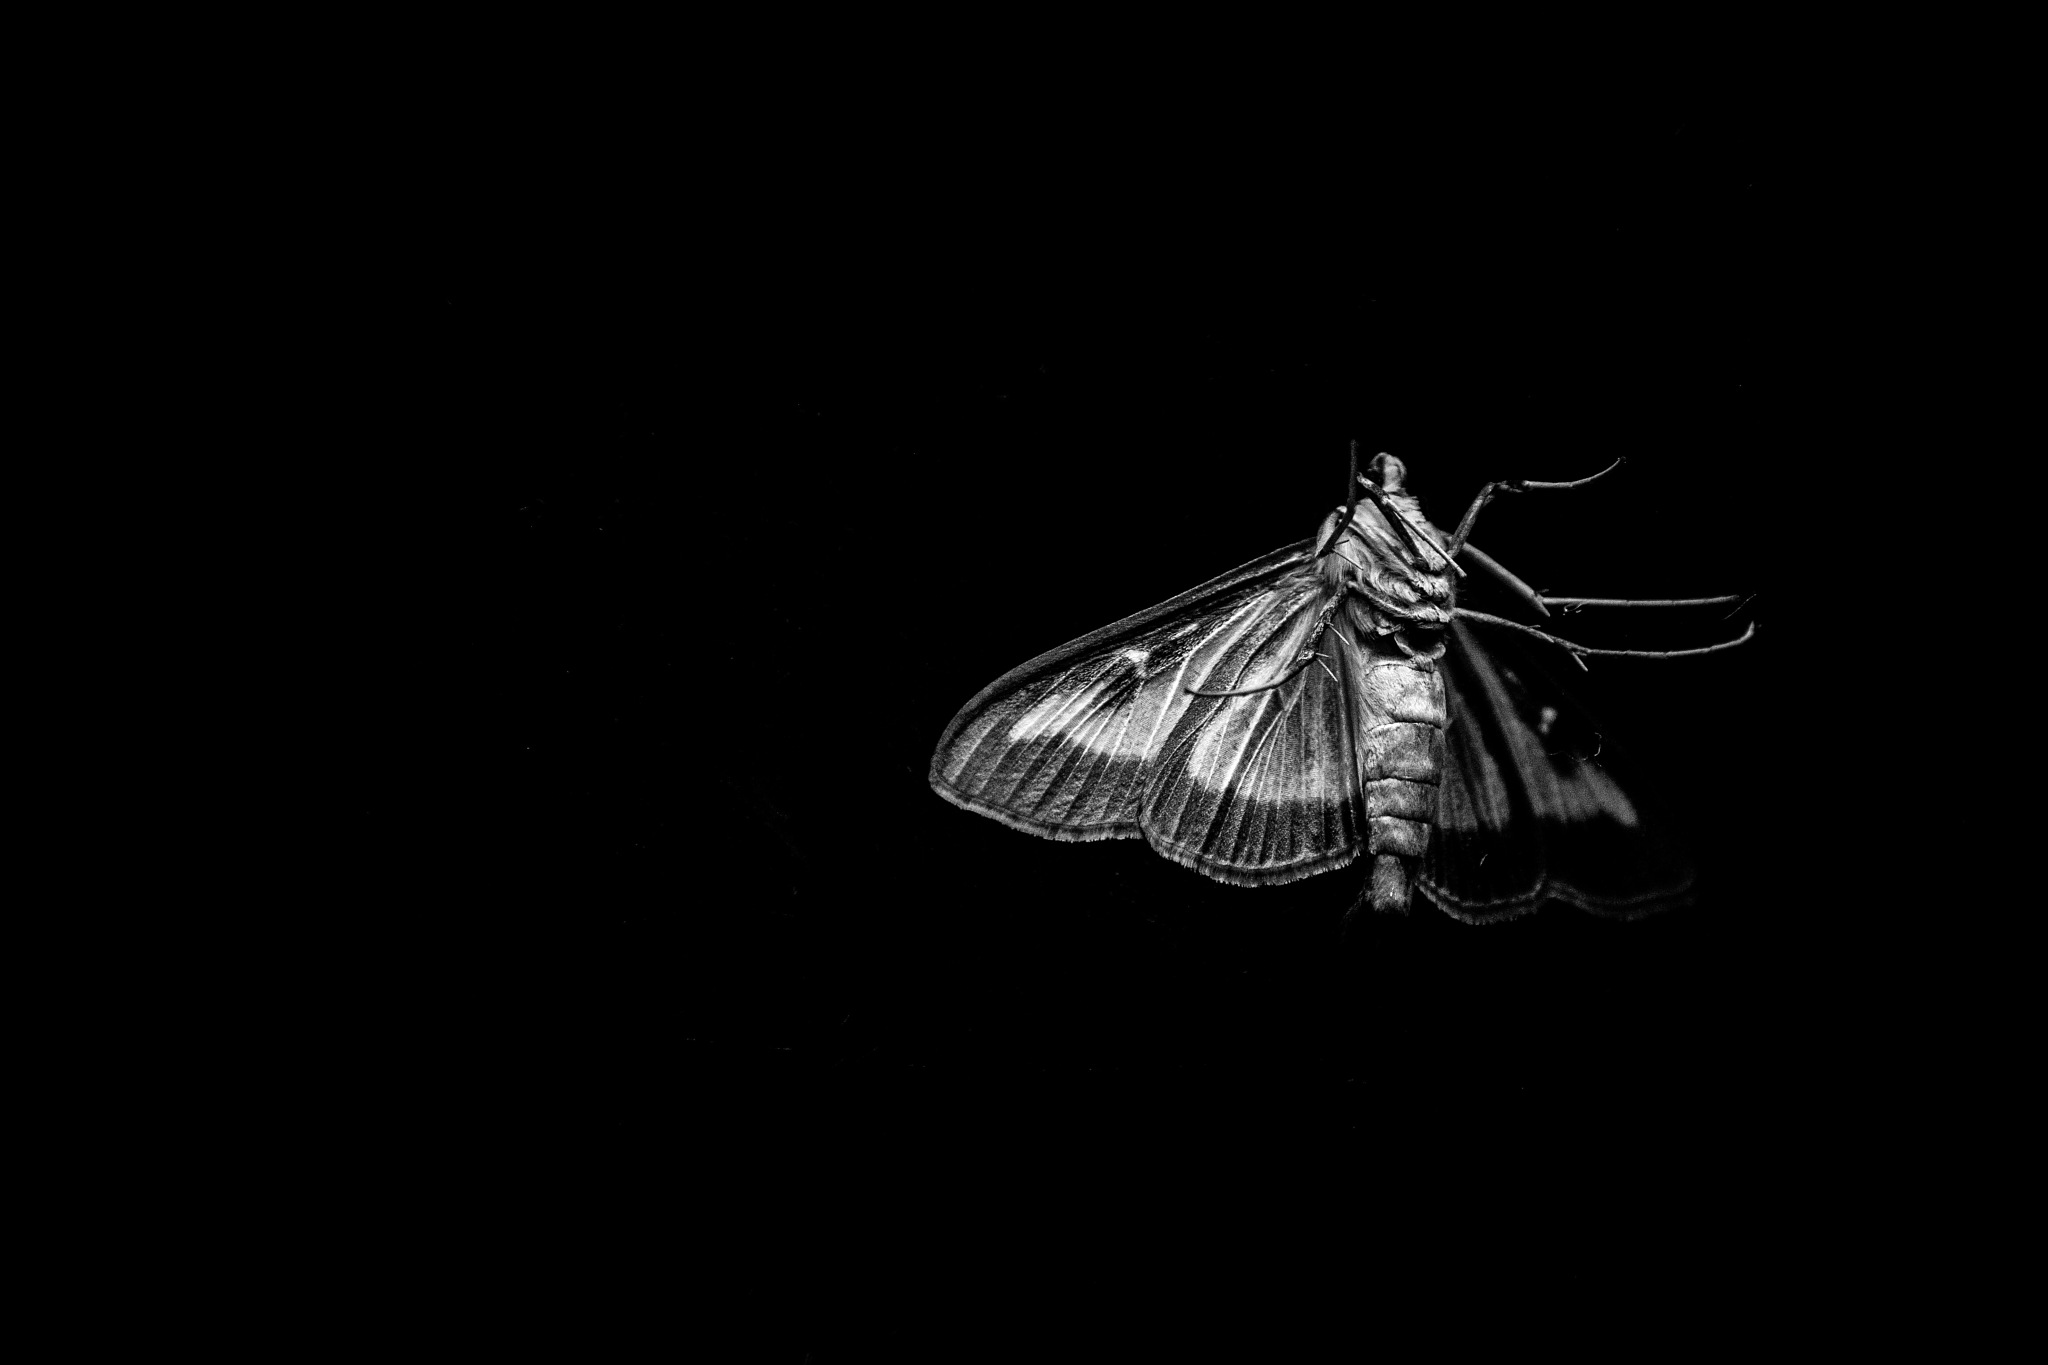 Moth by AlessandroNobili